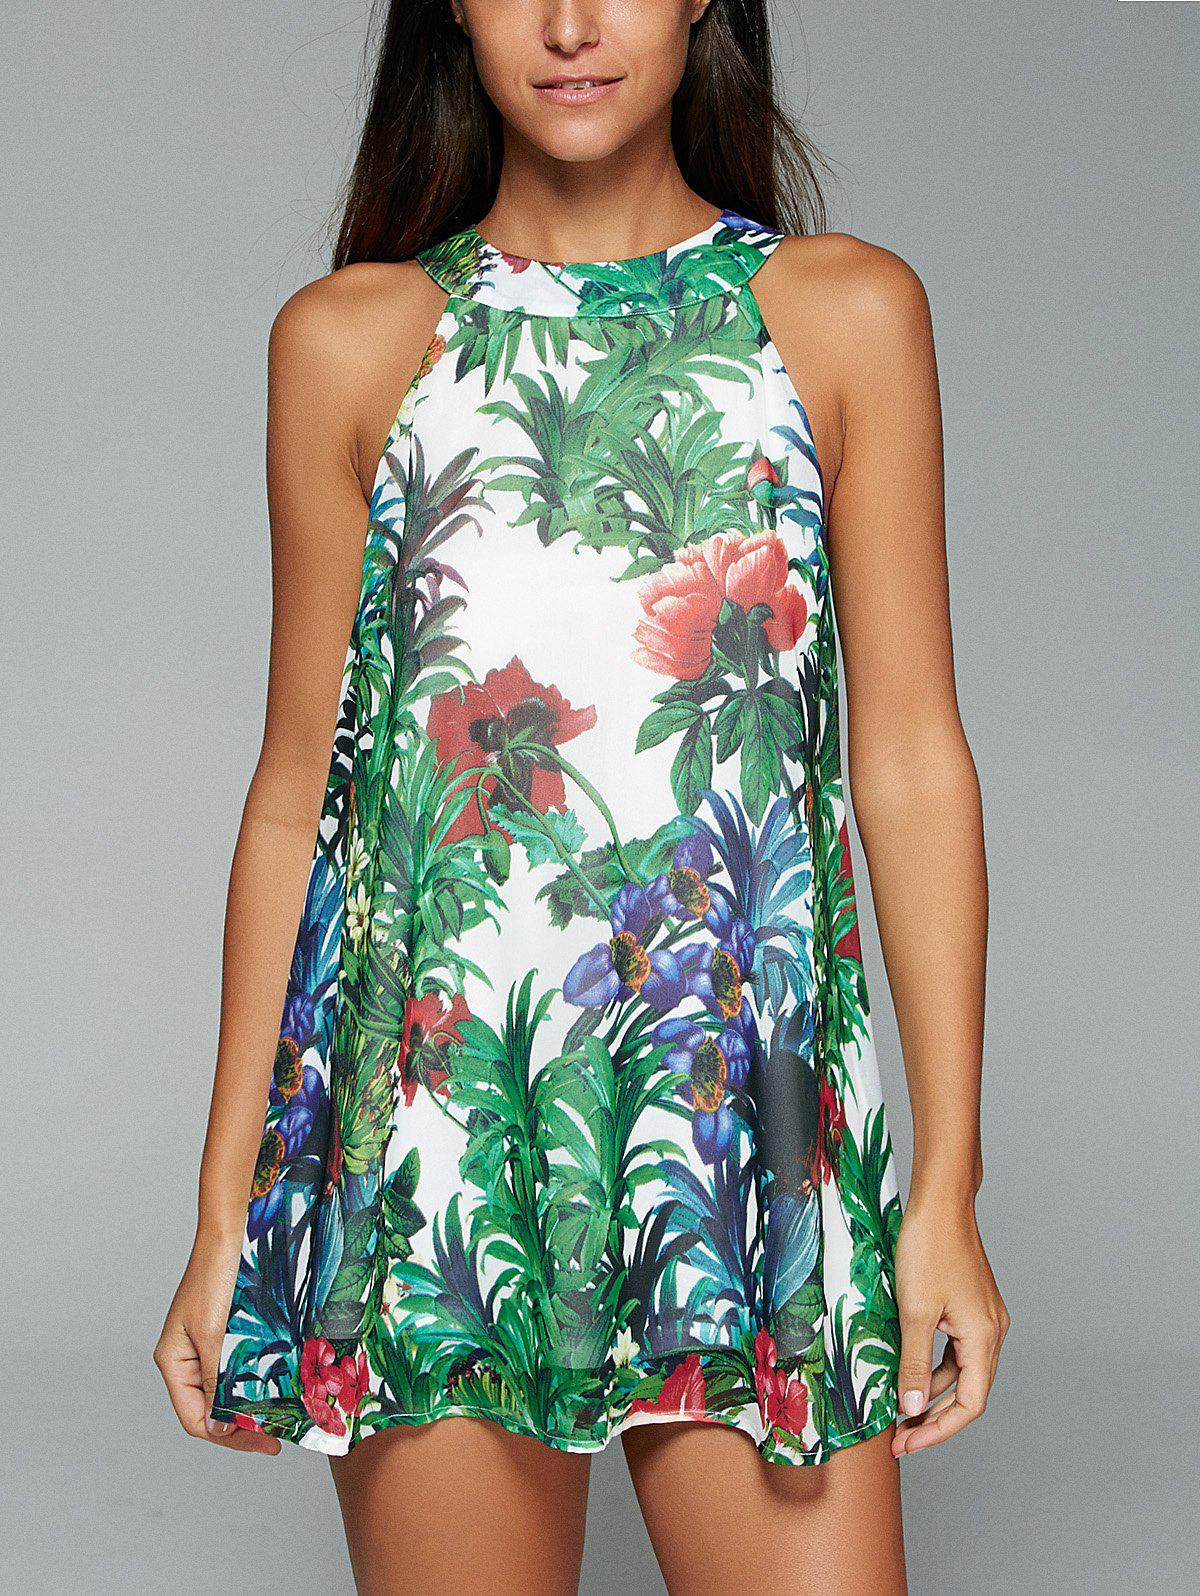 Tropic Print Loose Fitting Tank Top